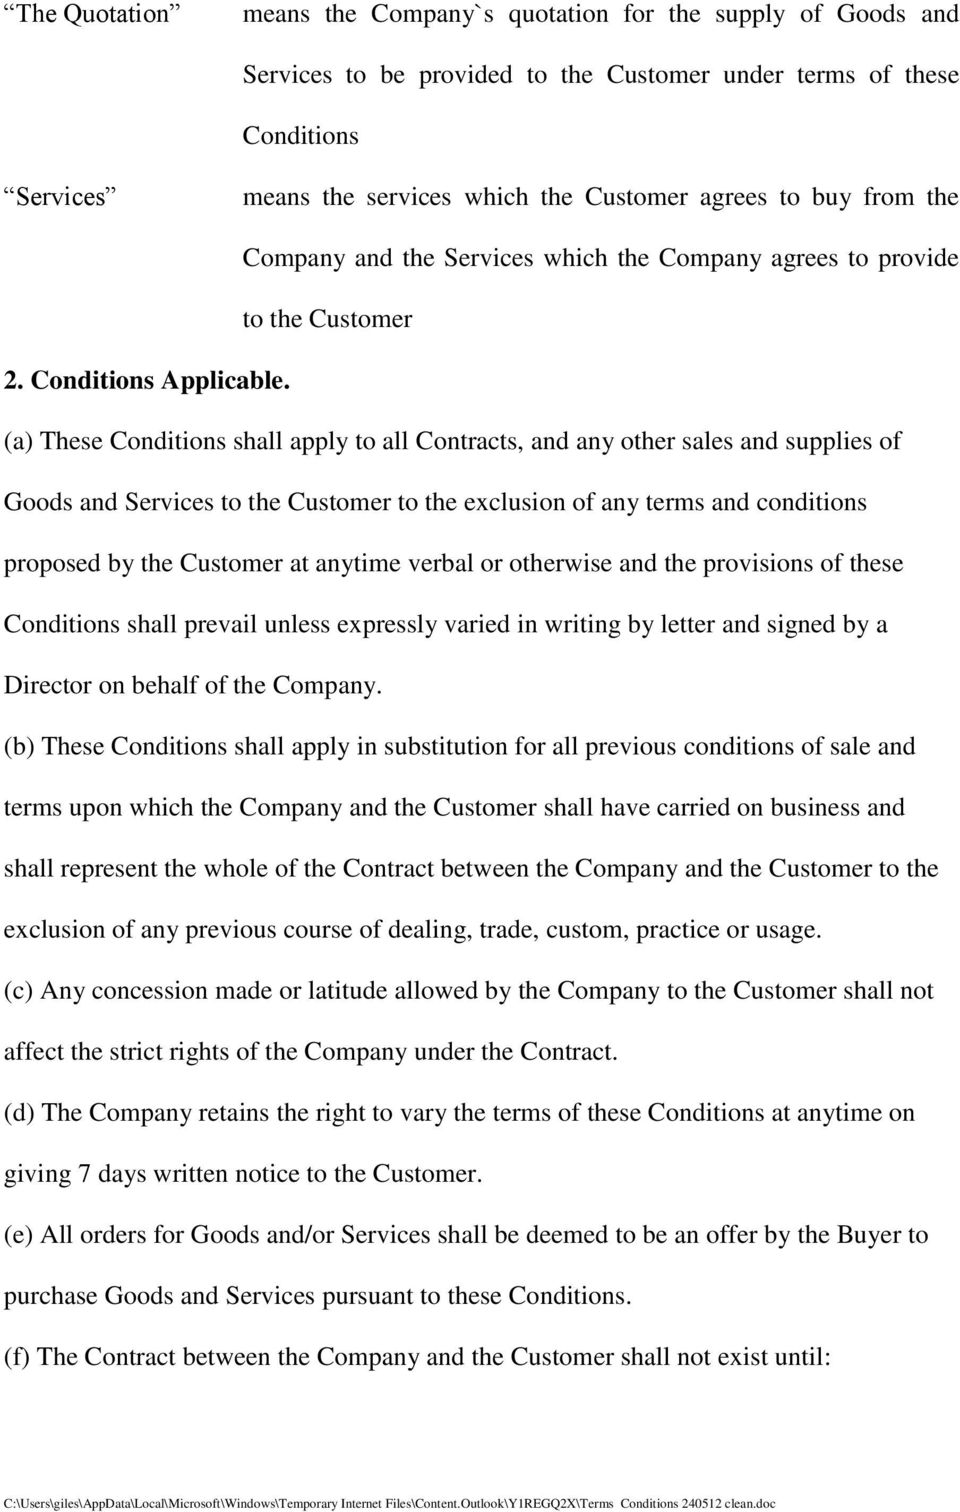 (a) These Conditions shall apply to all Contracts, and any other sales and supplies of Goods and Services to the Customer to the exclusion of any terms and conditions proposed by the Customer at